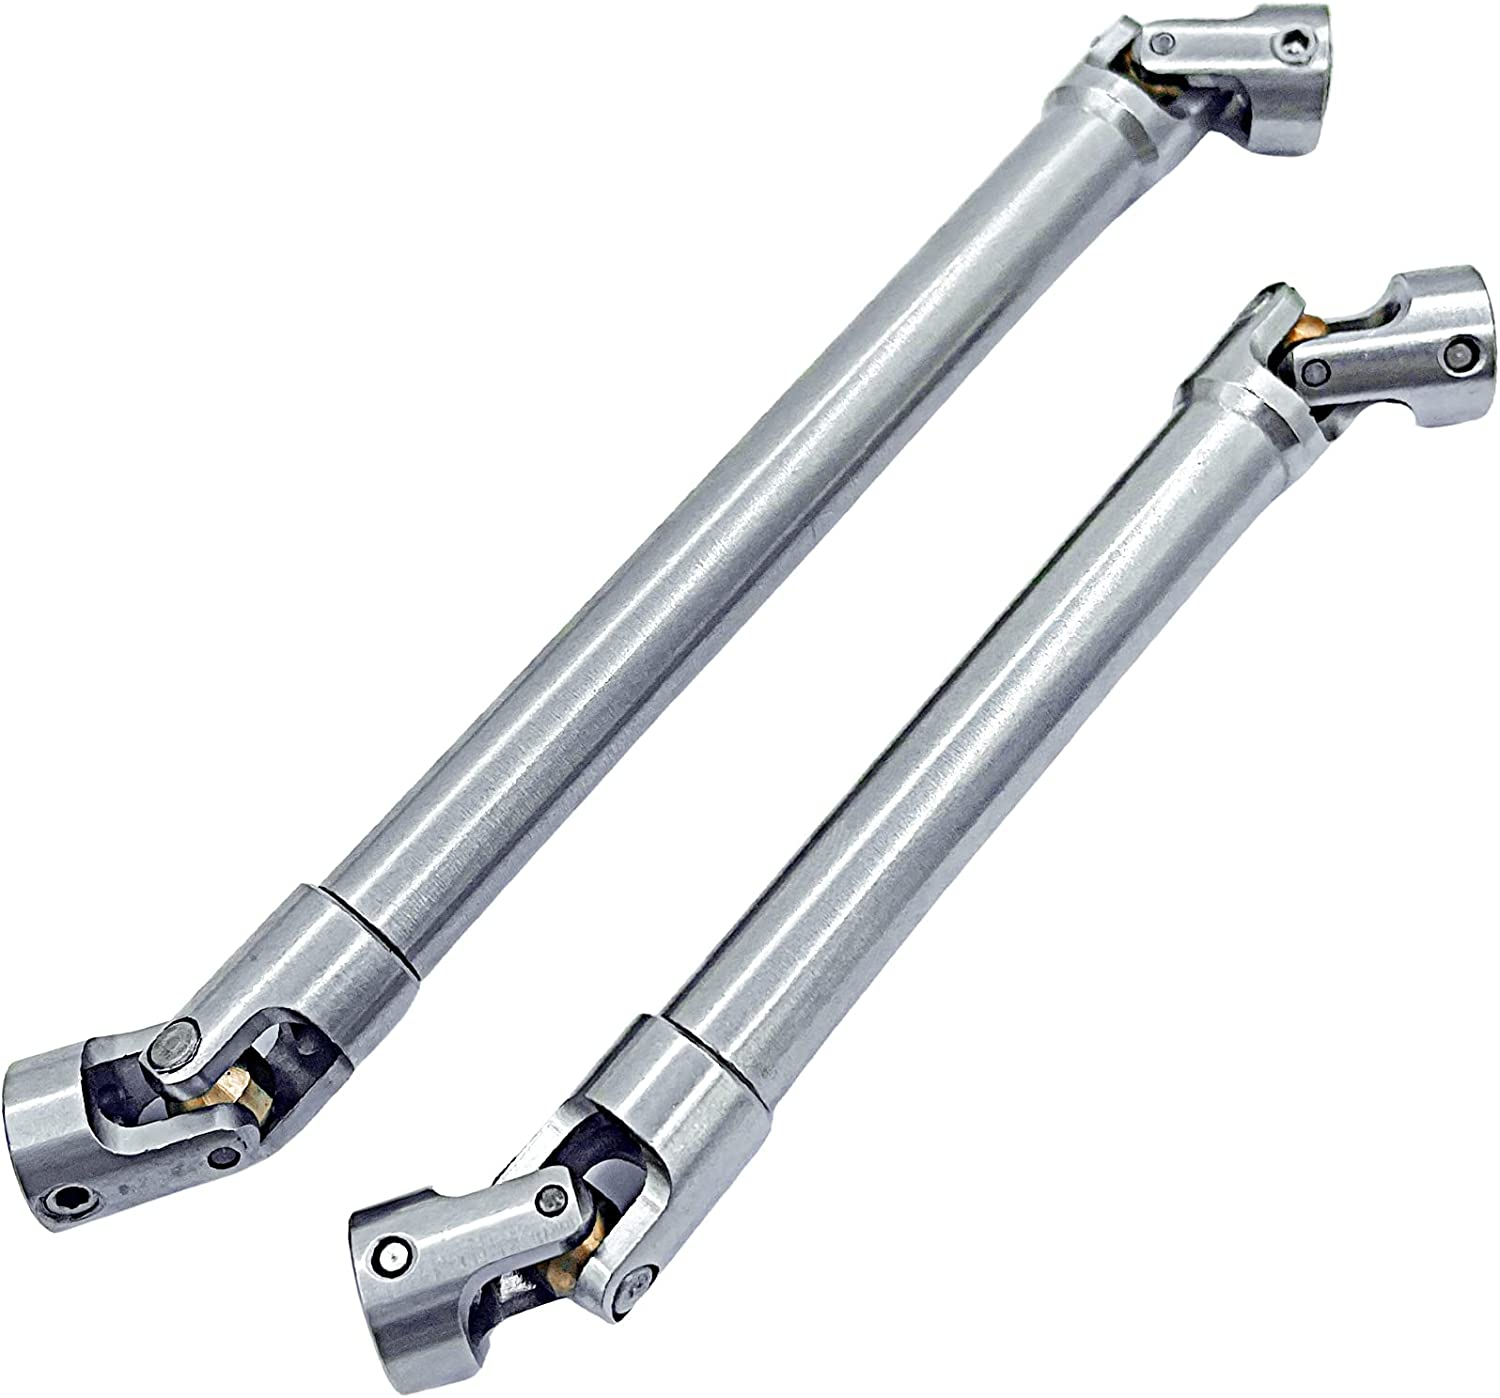 HOPLEX Stainless Ranking TOP9 Steel Drive Shaft 112-165mm R and 138-213mm for New product